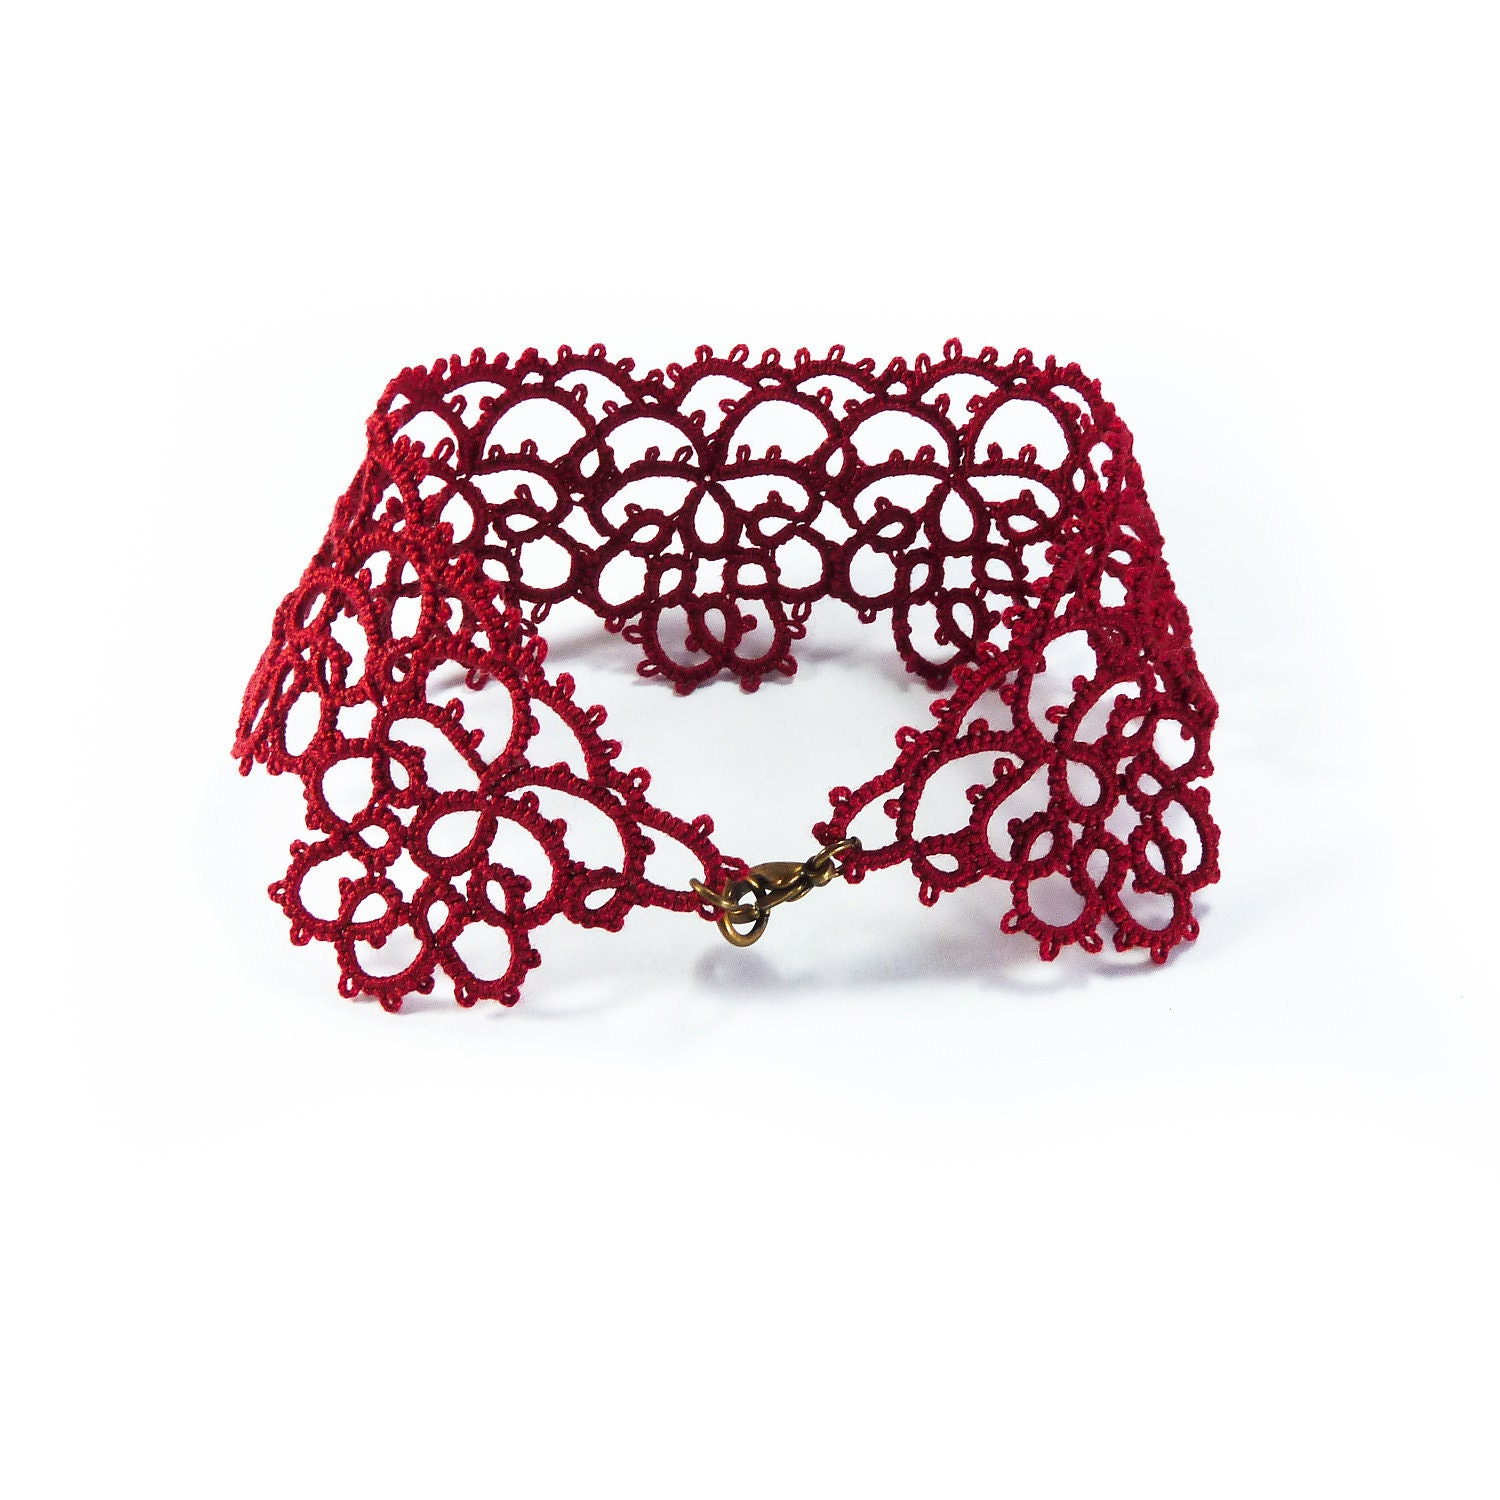 Burgundy oxblood  red cuff bracelet lace bracelet tatting jewelry bracelet lace terracotta - Decoromana